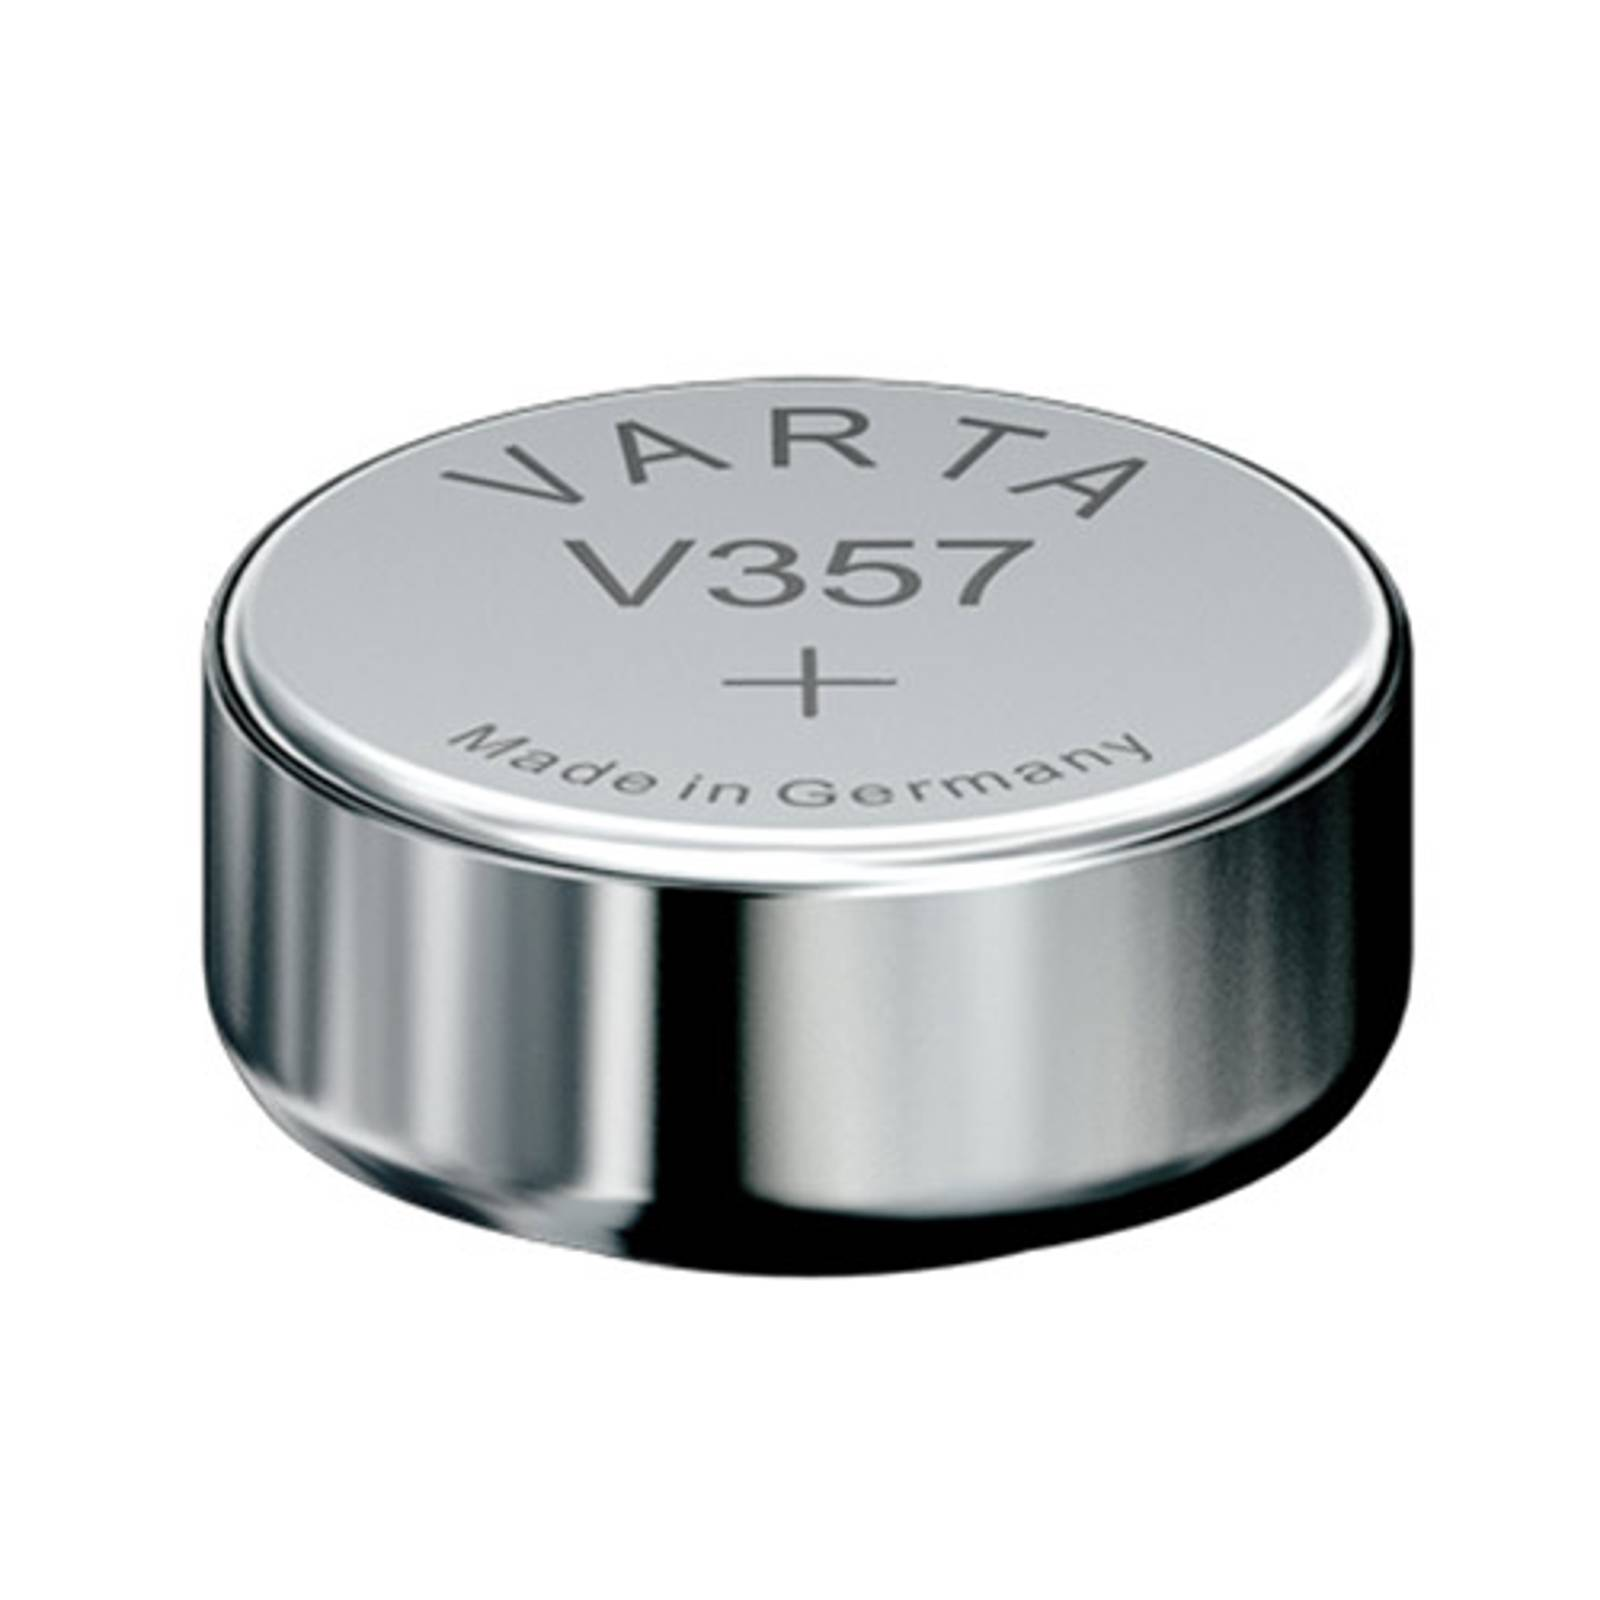 V357 button cell from Varta